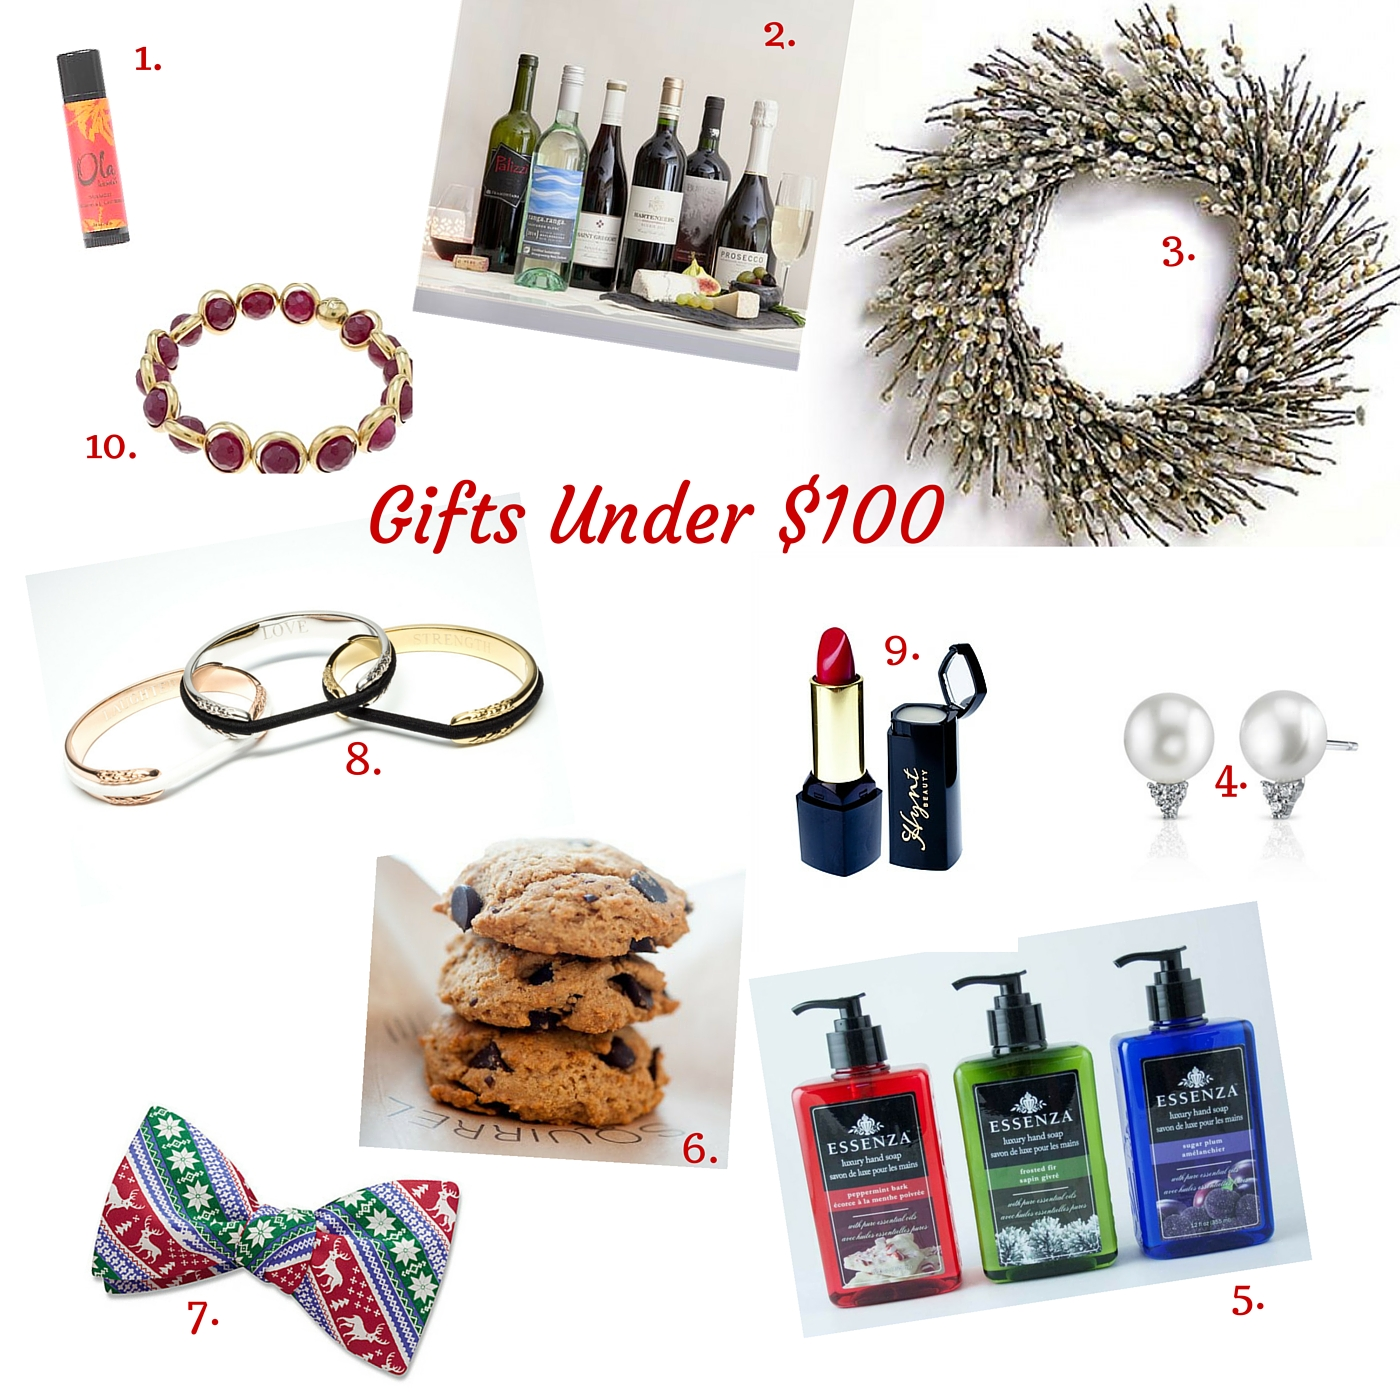 Last Minute Holiday Gifts for Under $100